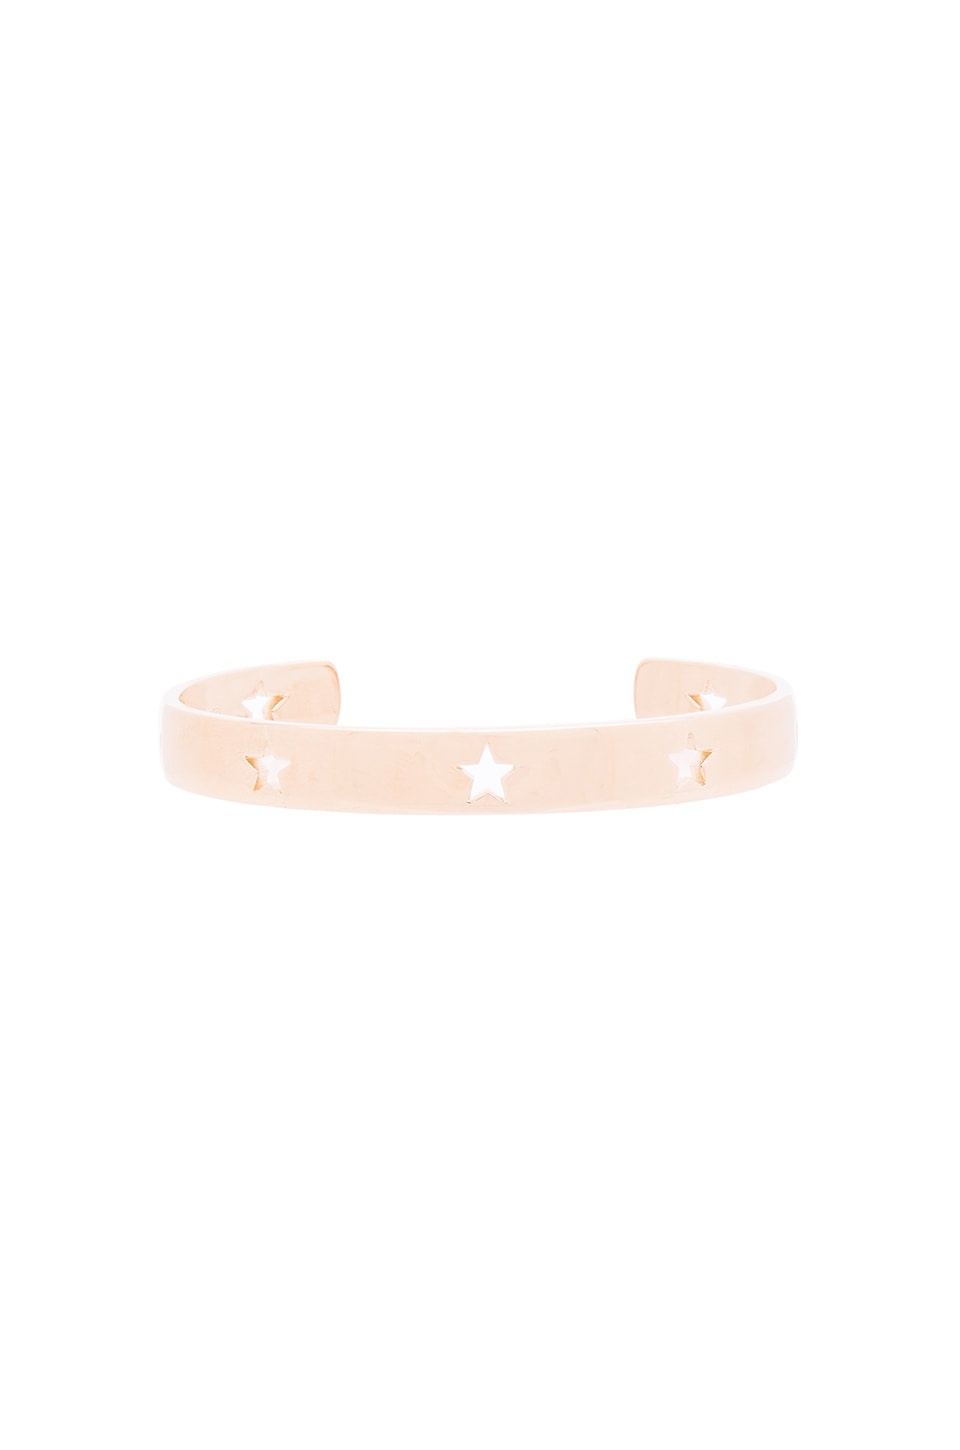 Elizabeth and James Polaris Cuff in Yellow Gold